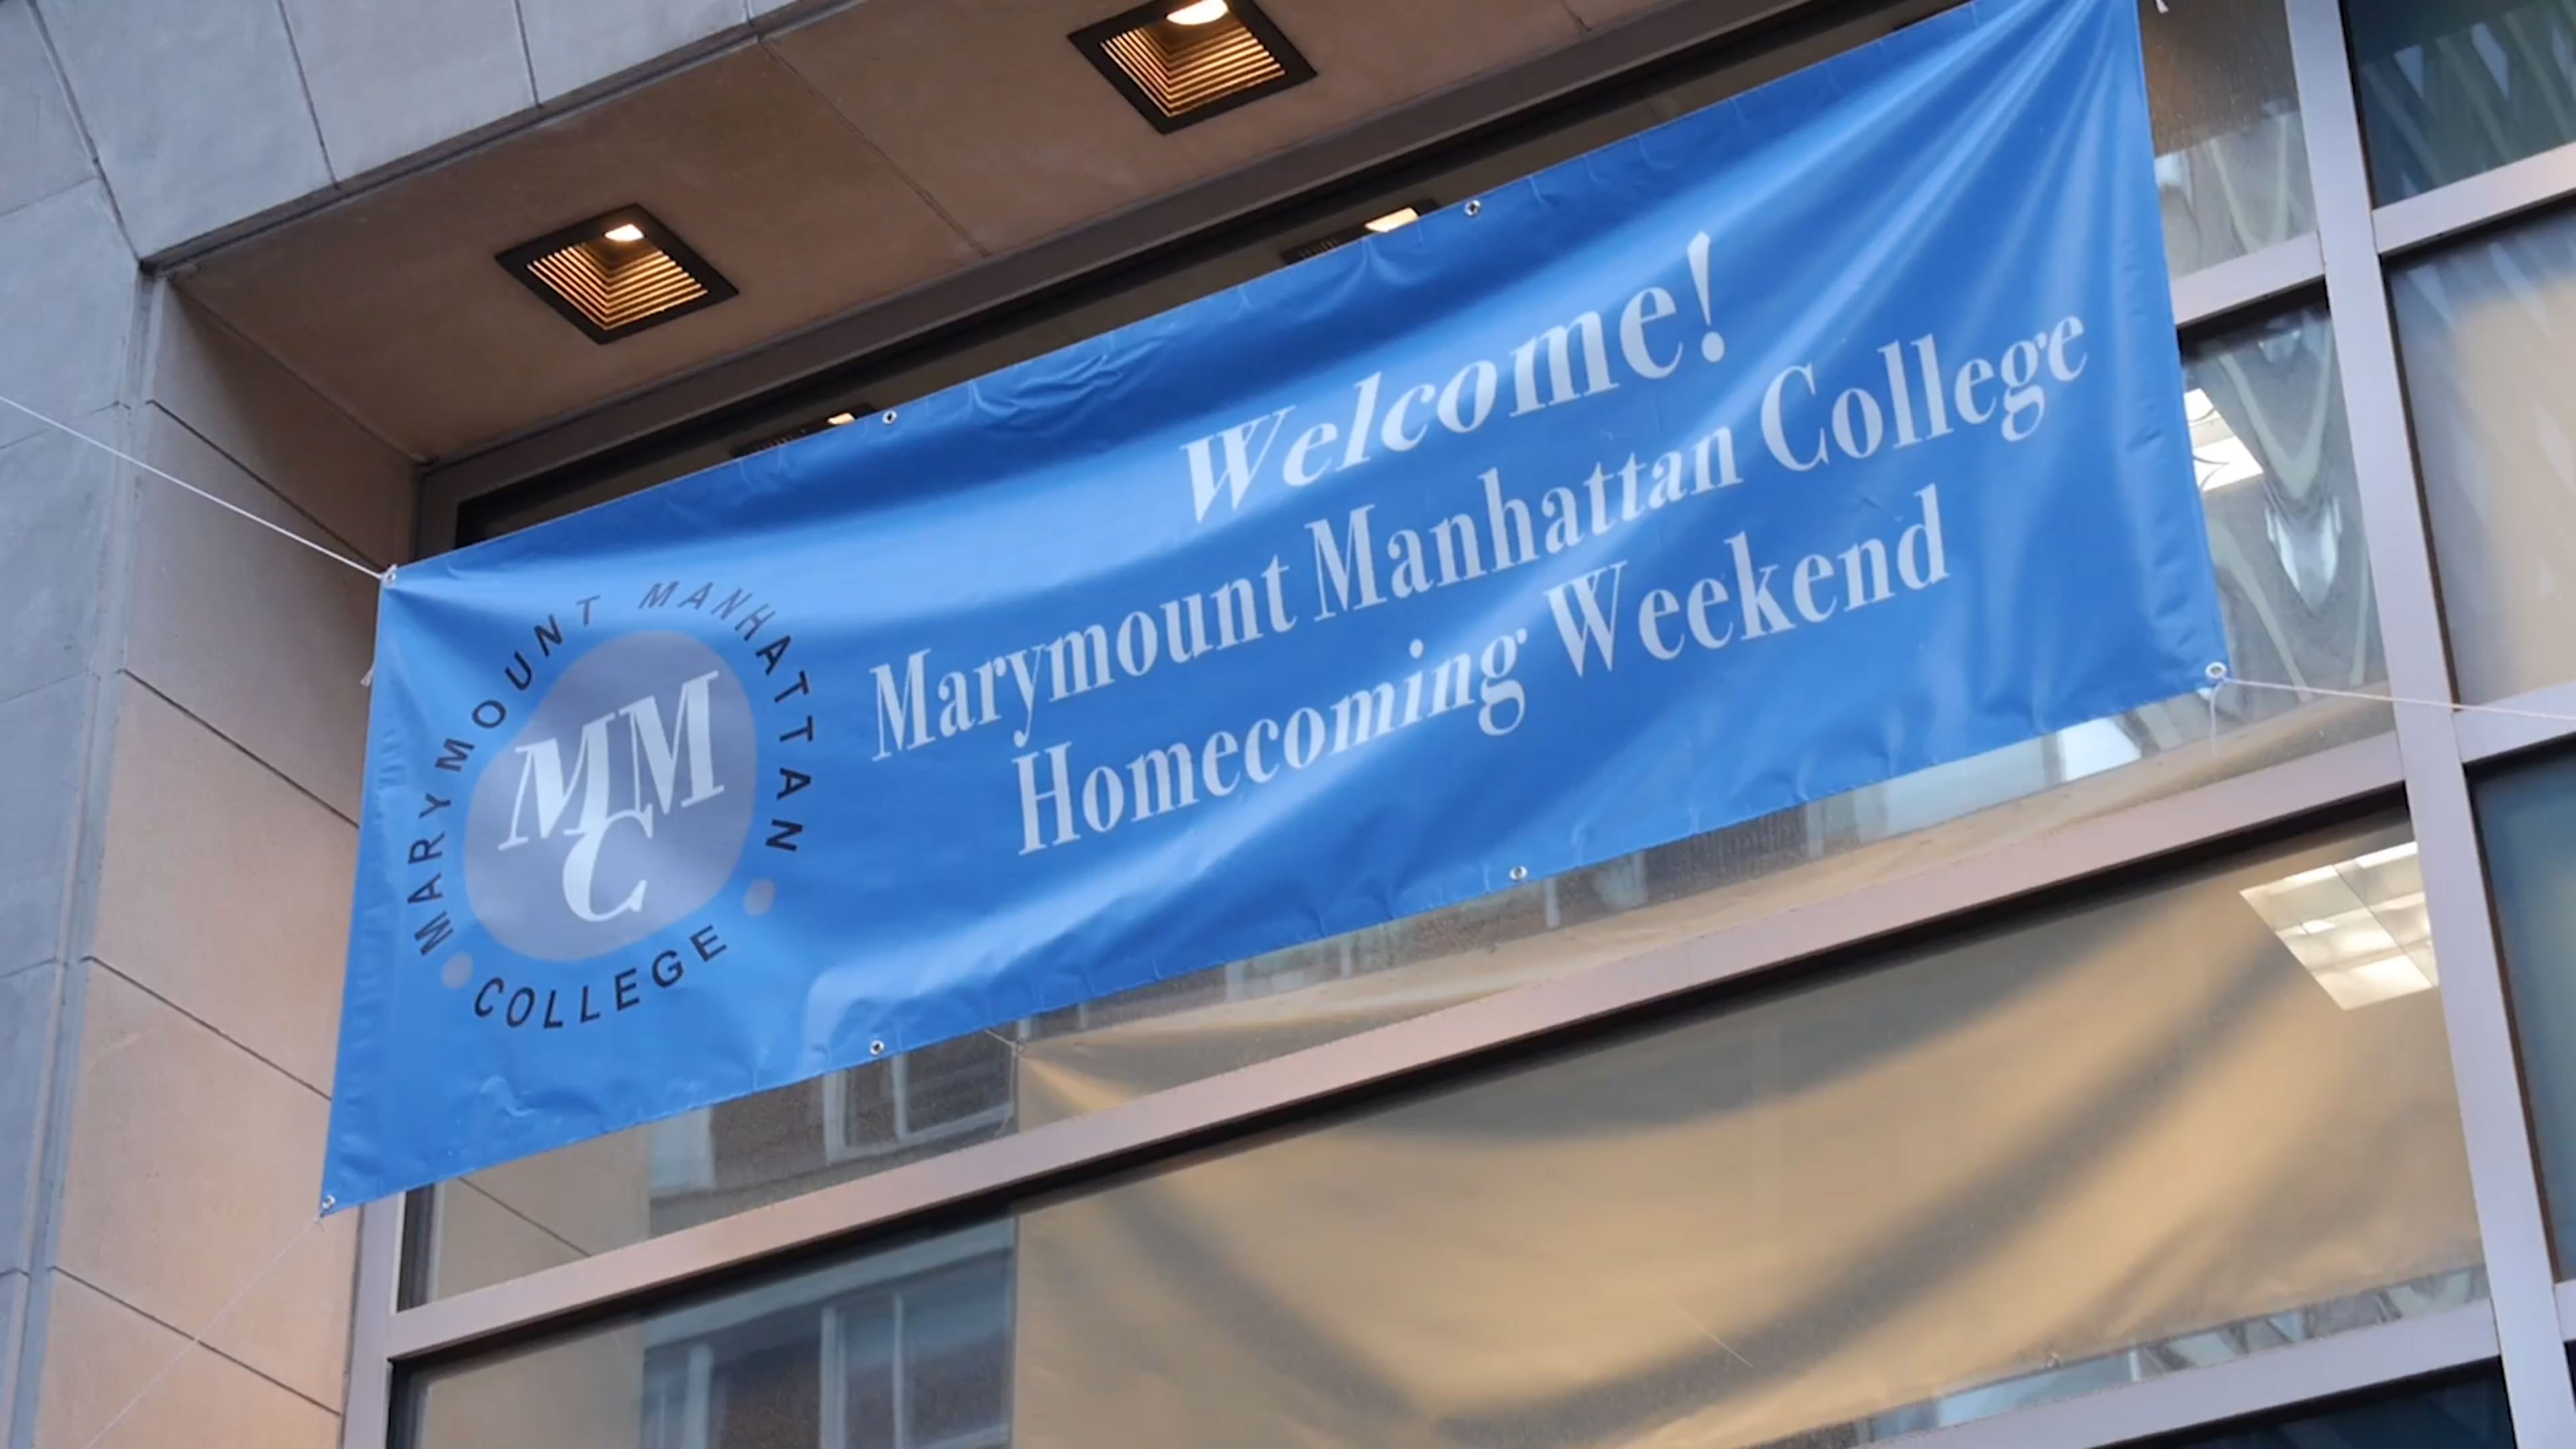 Marymount Manhattan College Psa Bunting Design